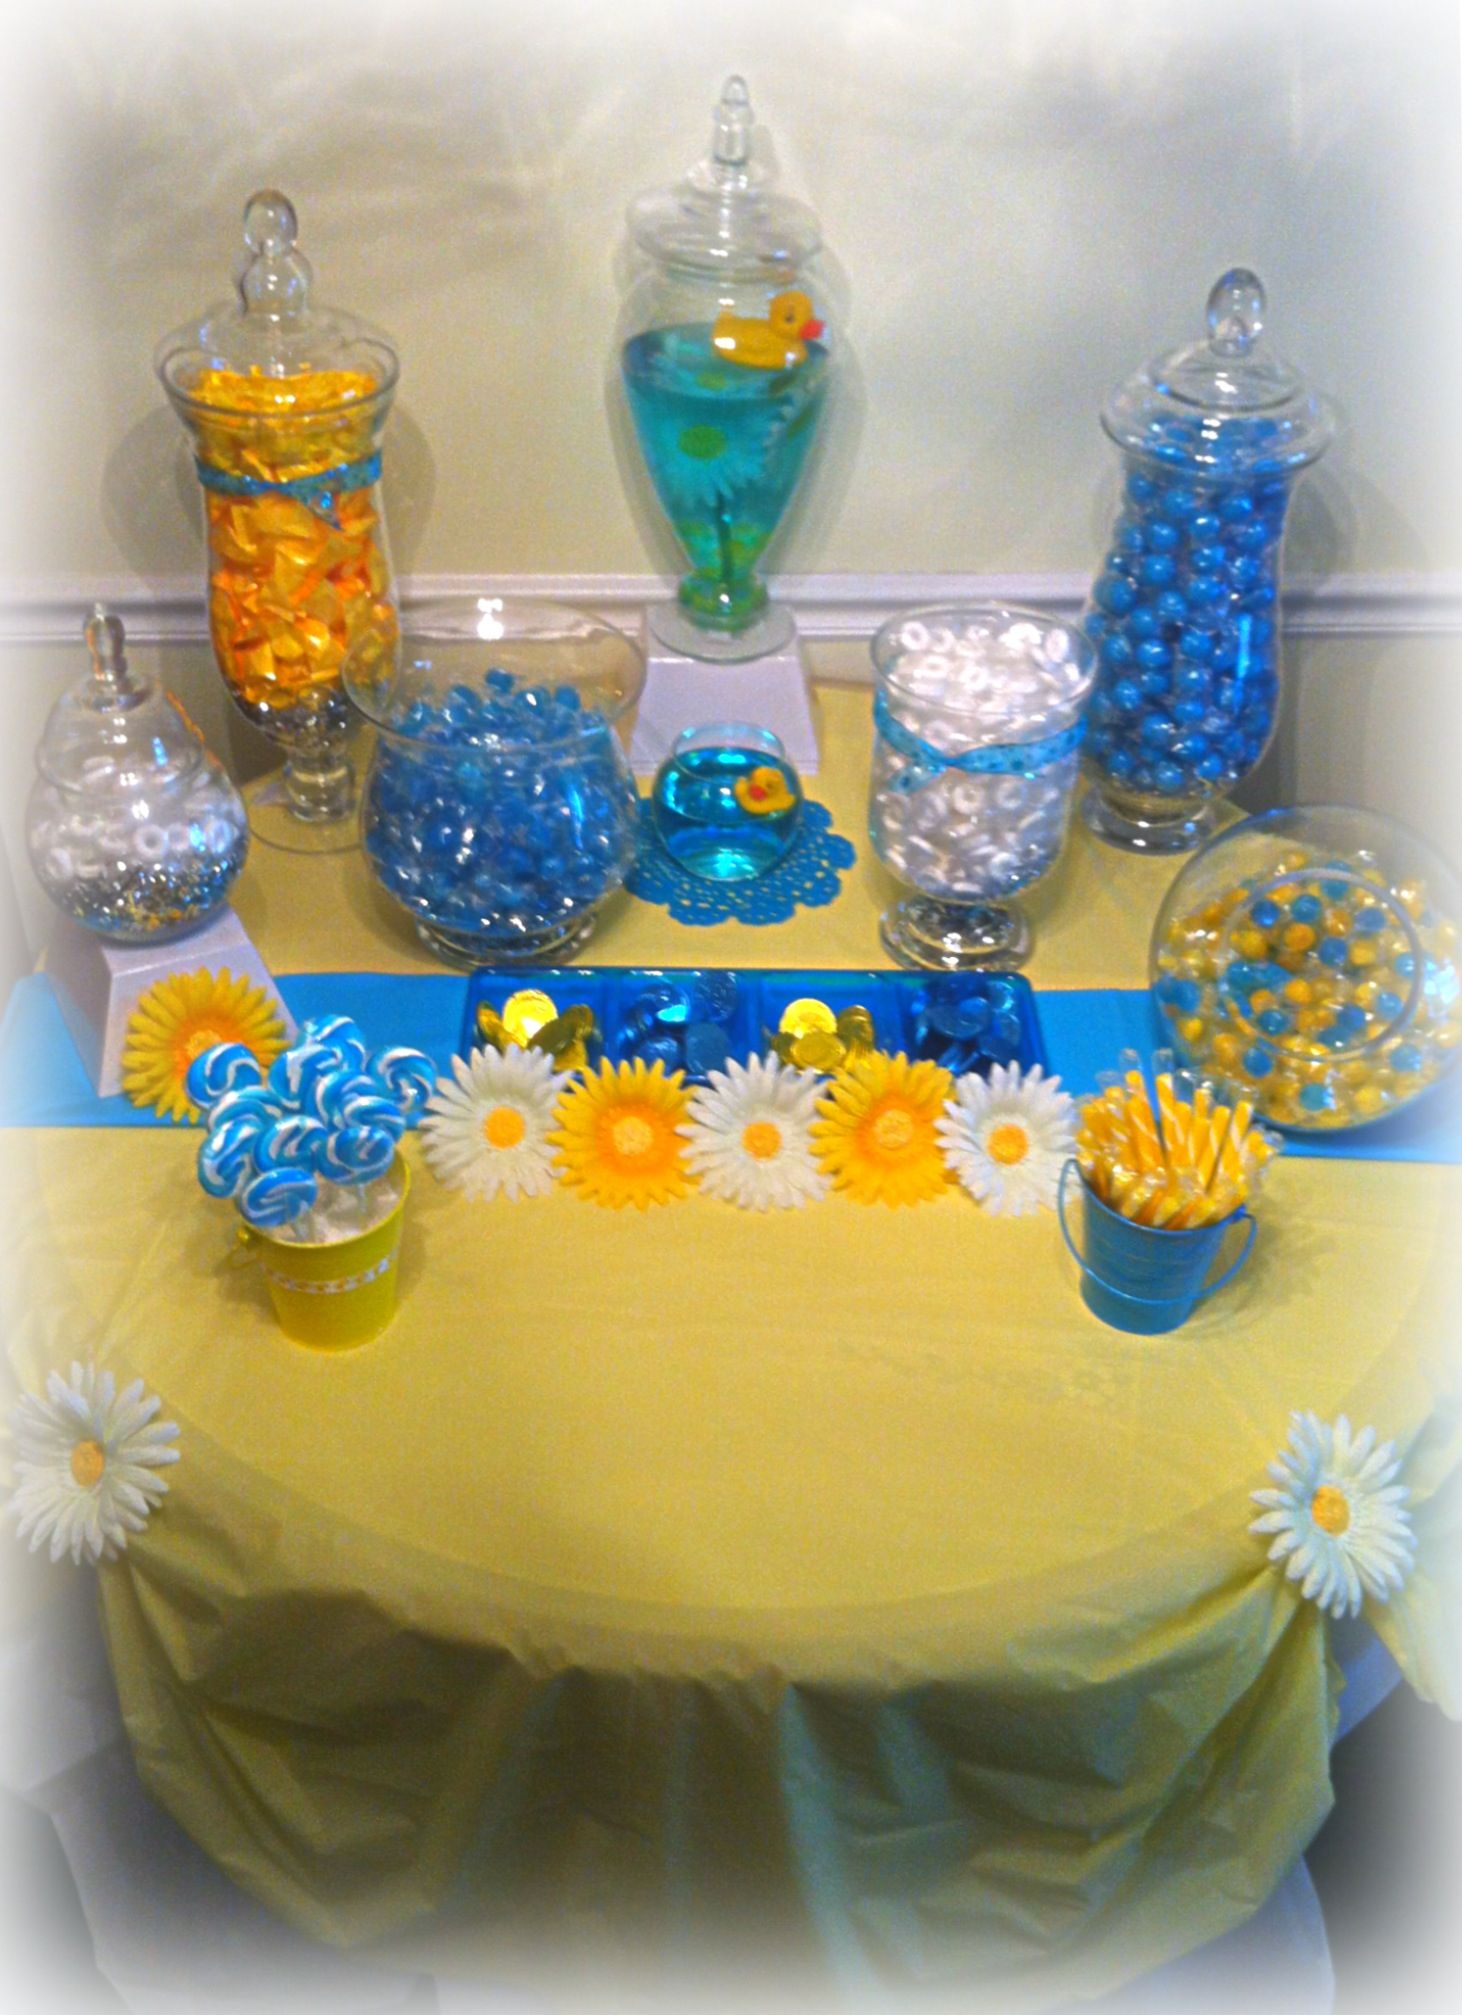 It\u0027s a boy! Caribbean blue and yellow, elegant, rubber ducky